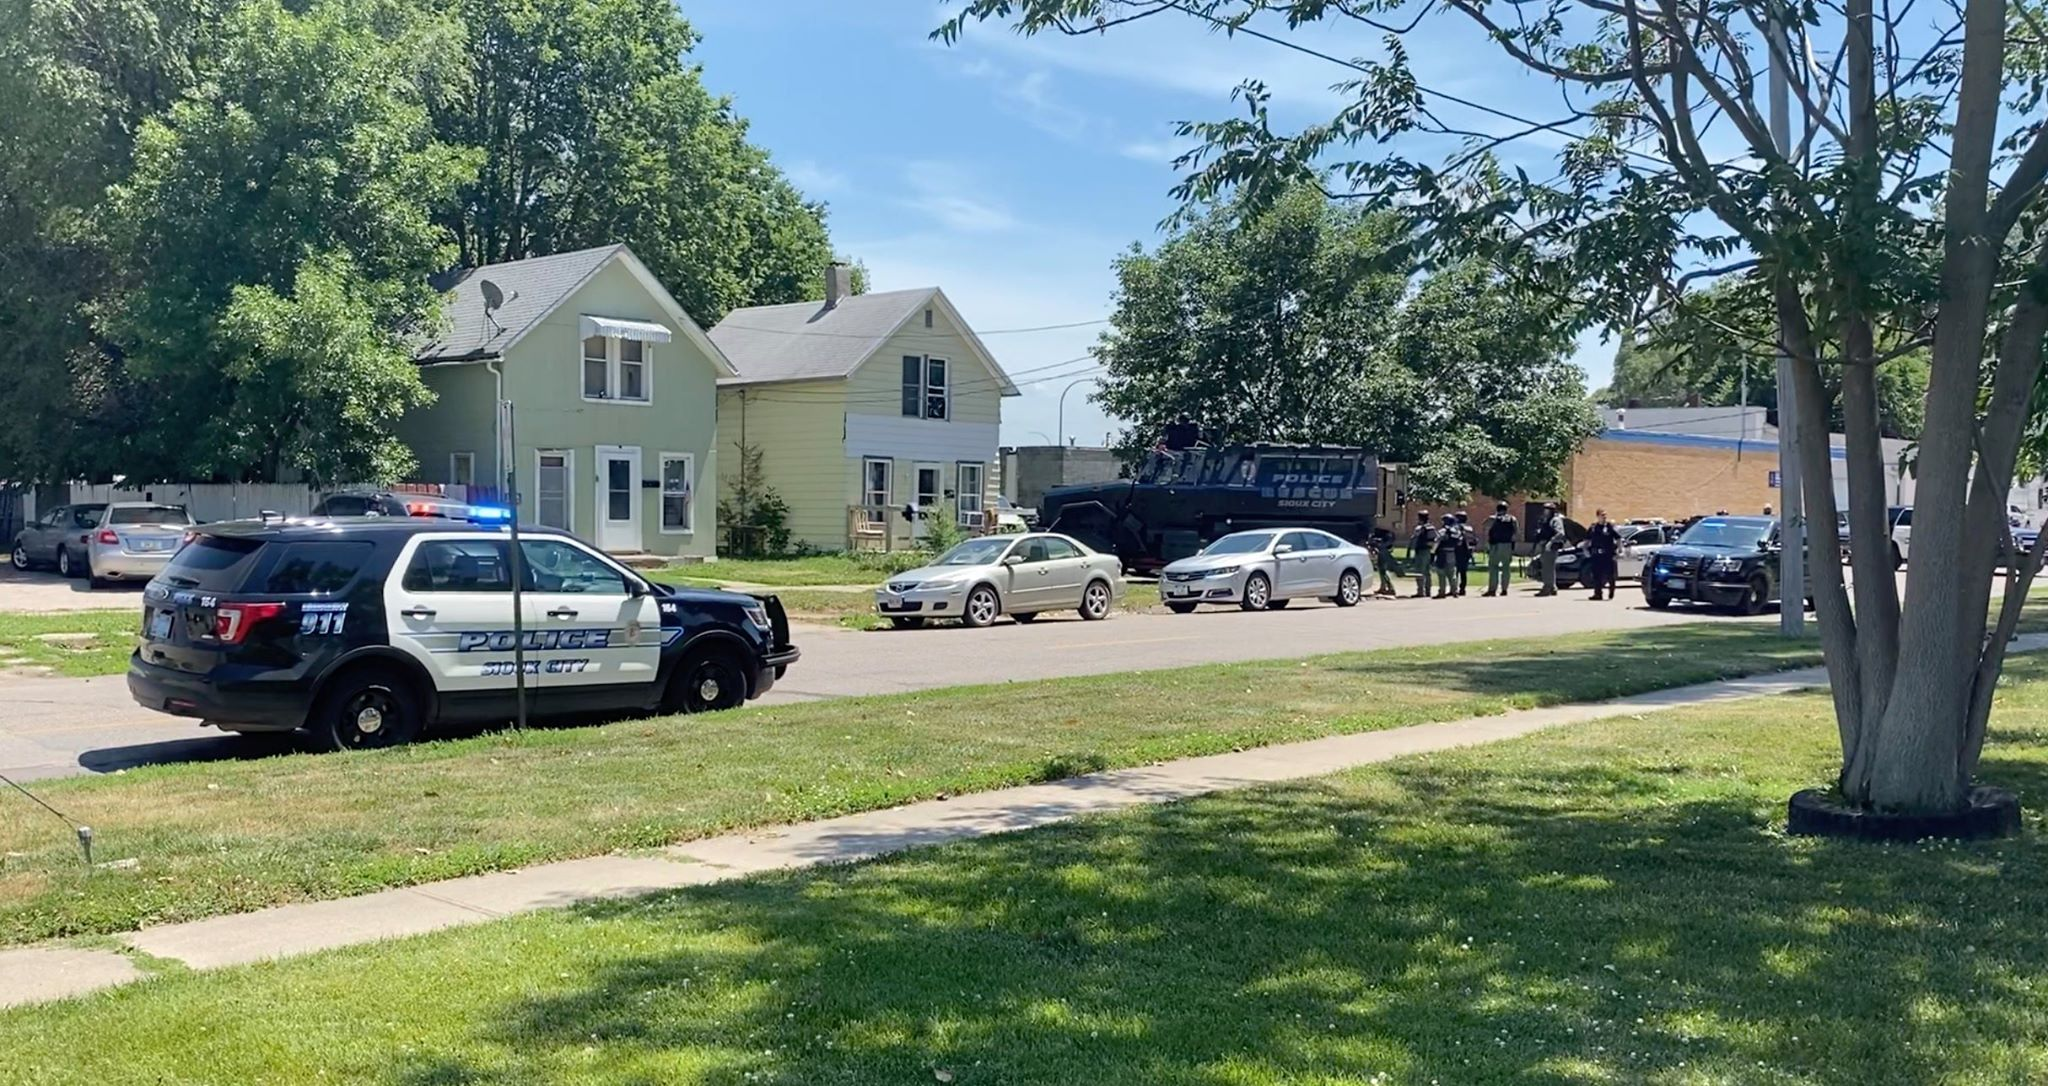 US Marshals and Sioux City Police Serve Search Warrant on Center Street House